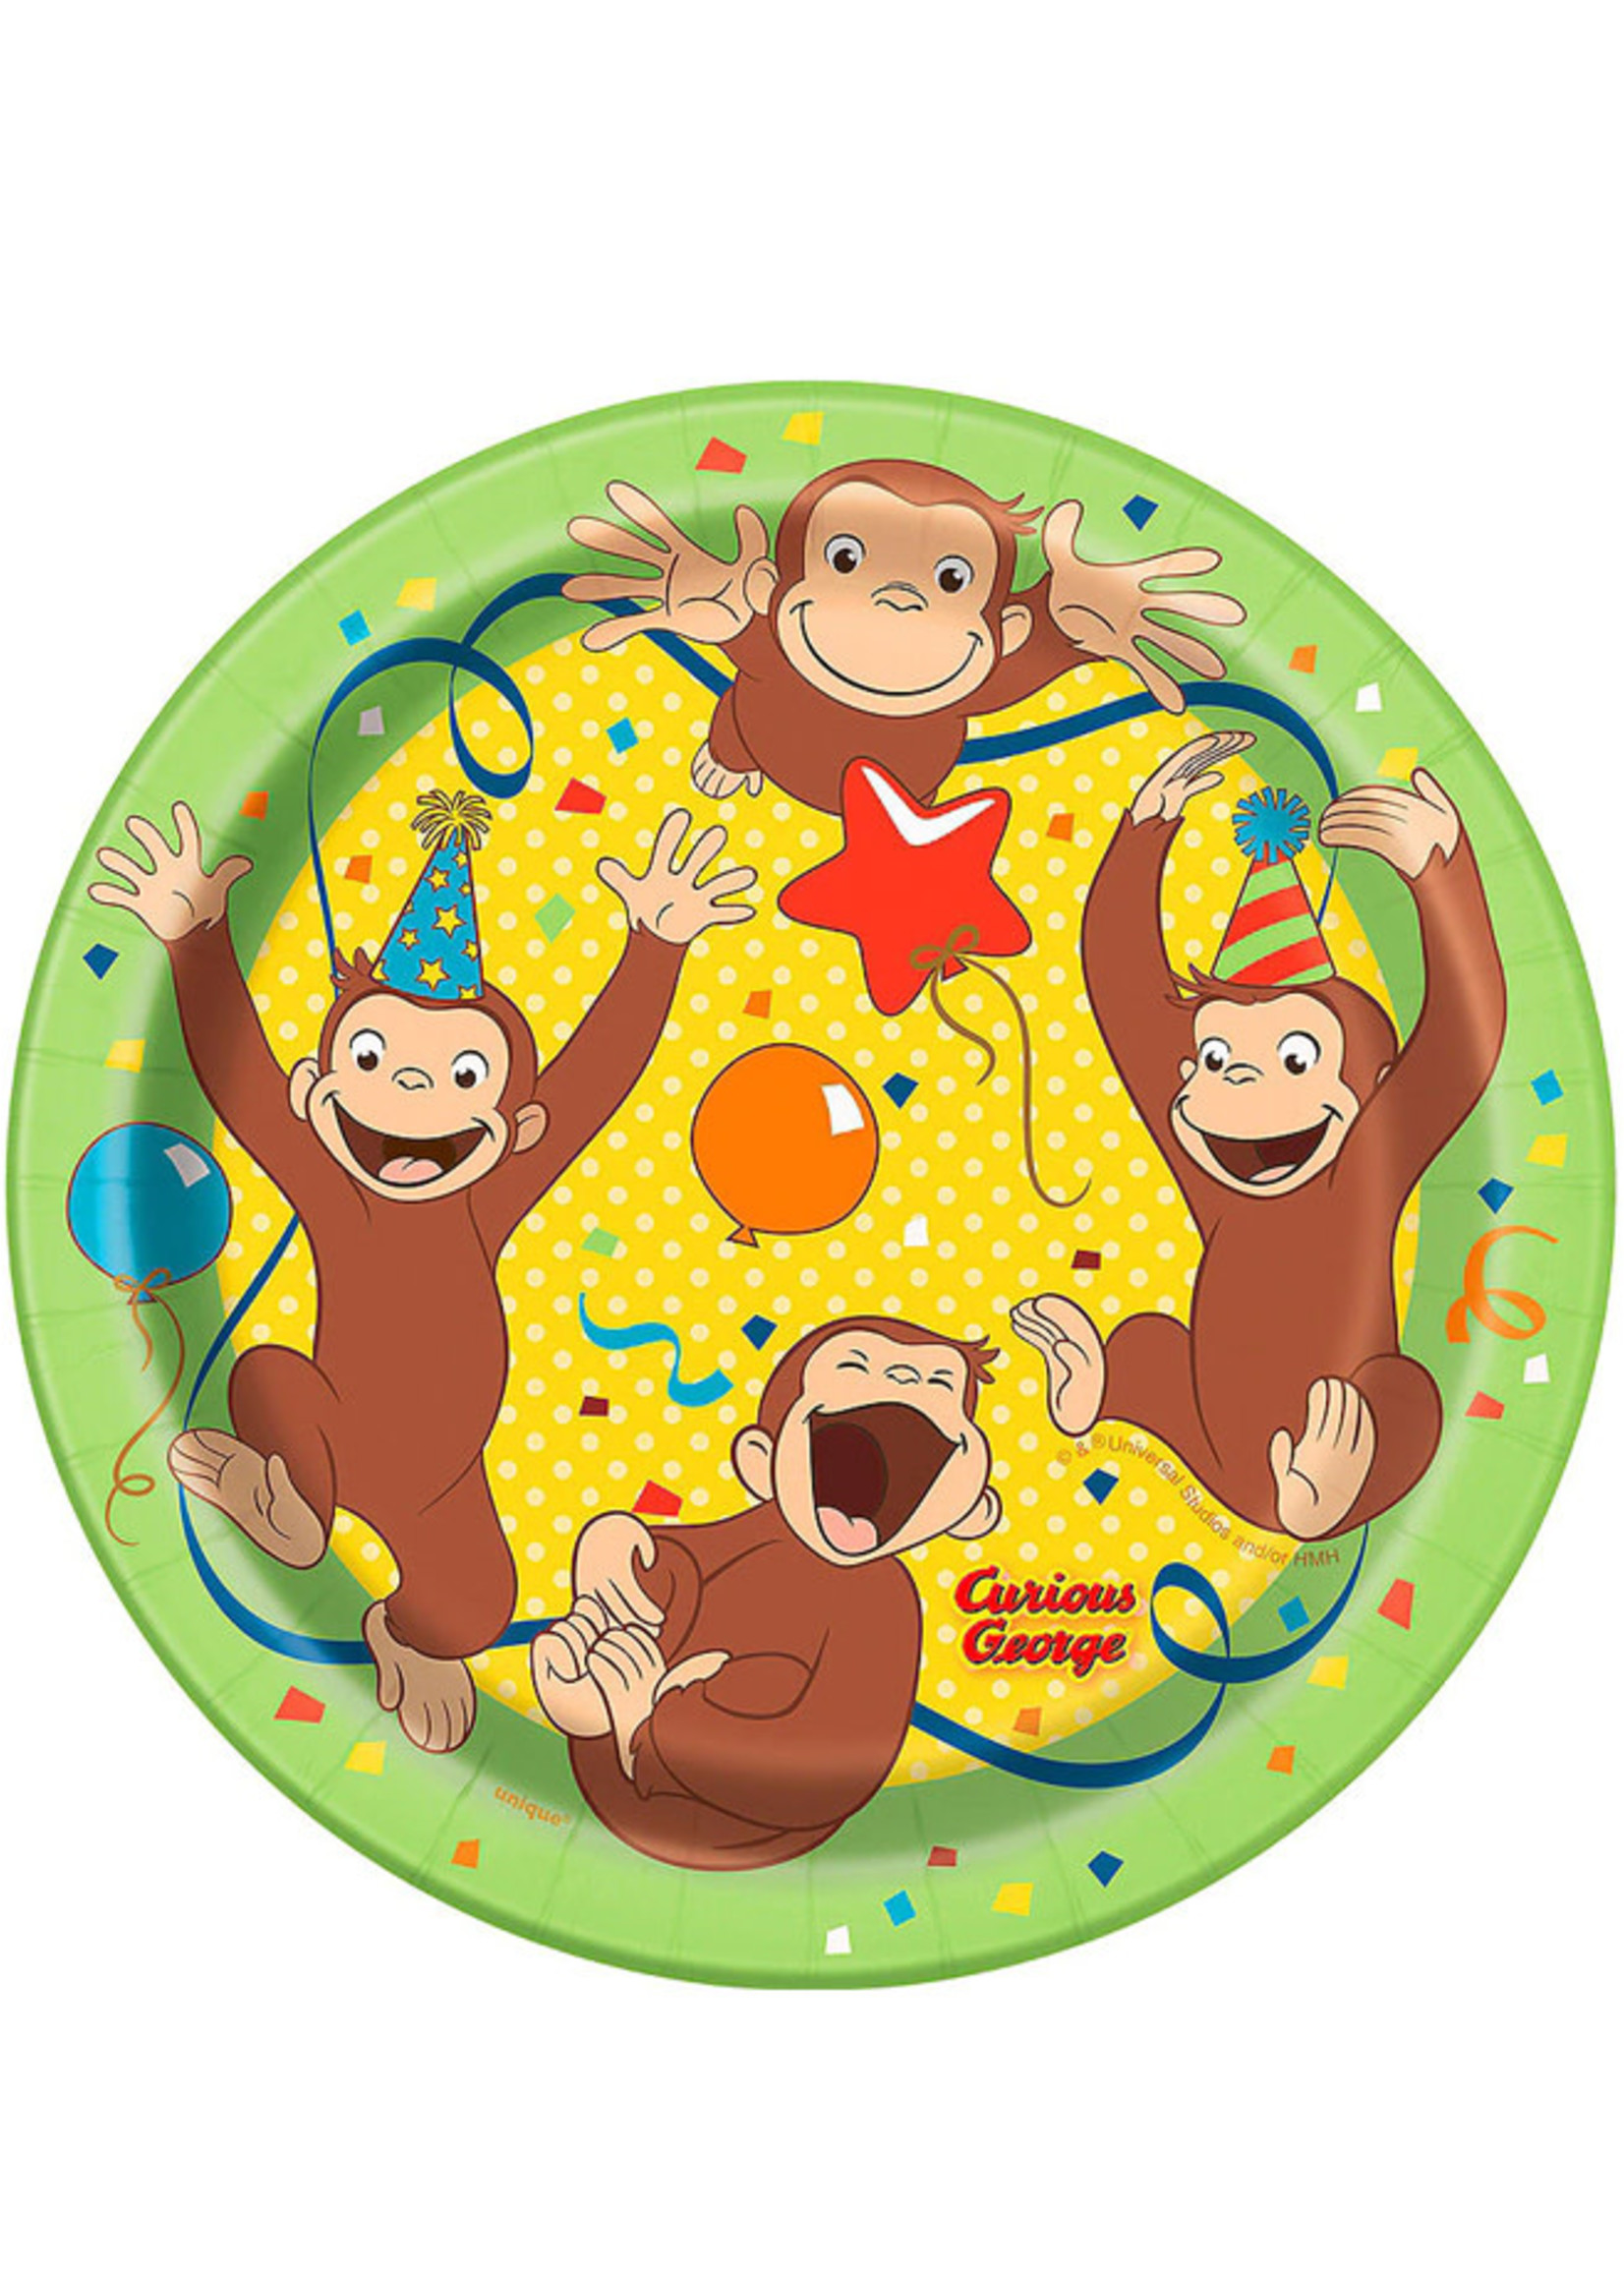 UNIQUE INDUSTRIES INC Curious George Dessert Plates - 8ct